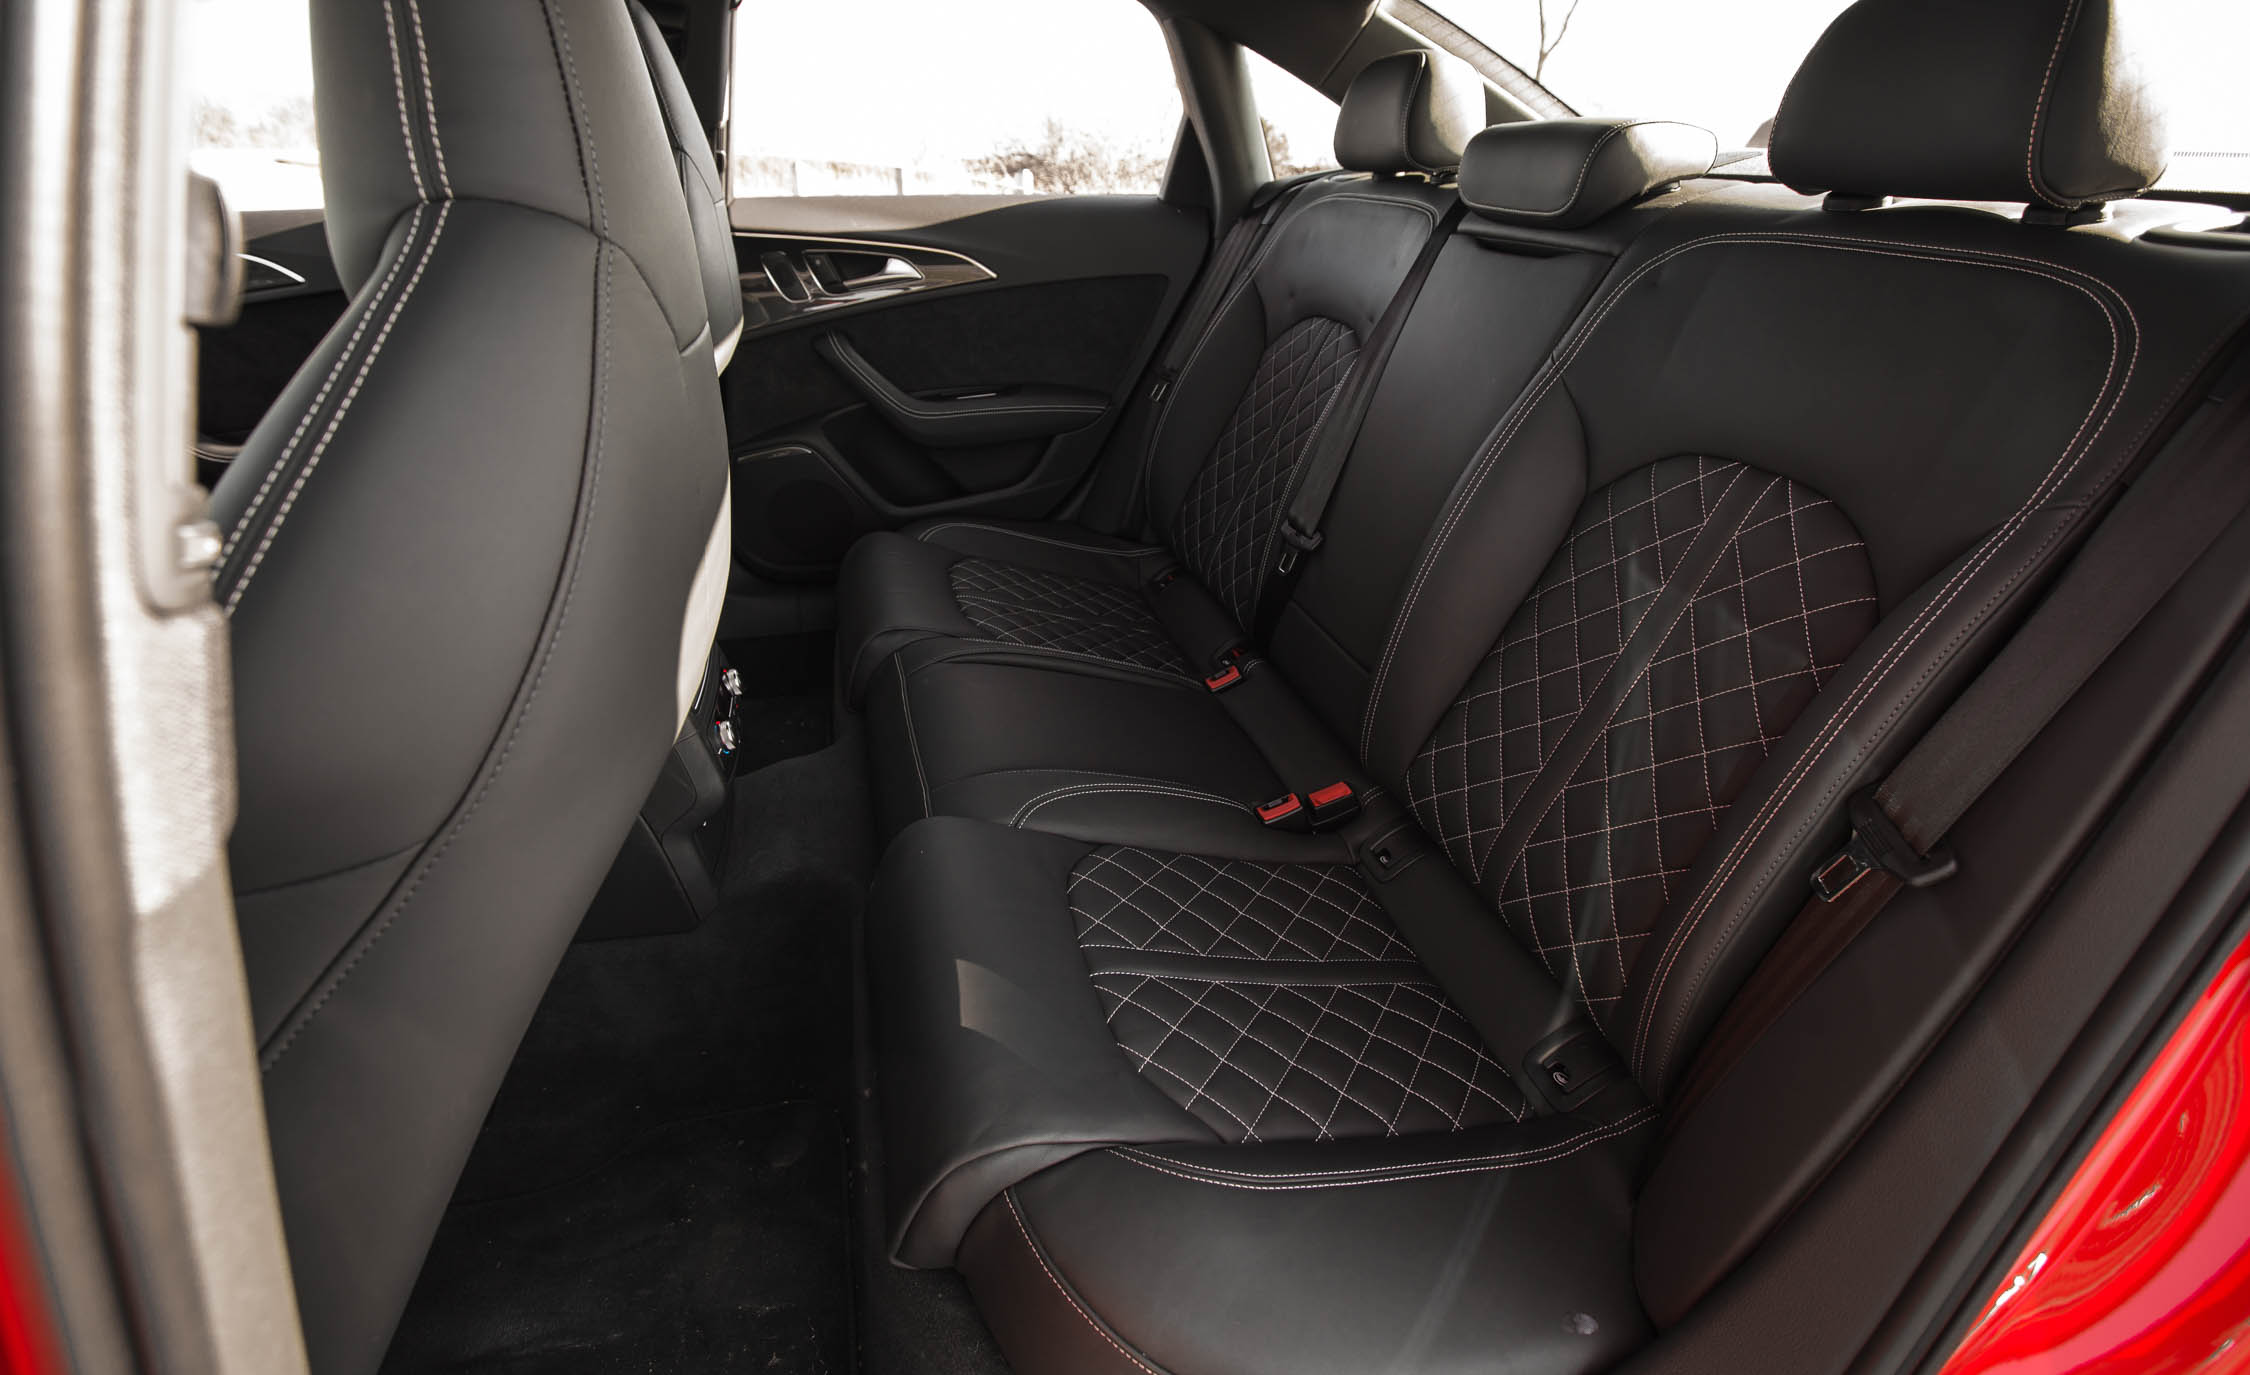 2016 Audi S6 Interior Seats Rear